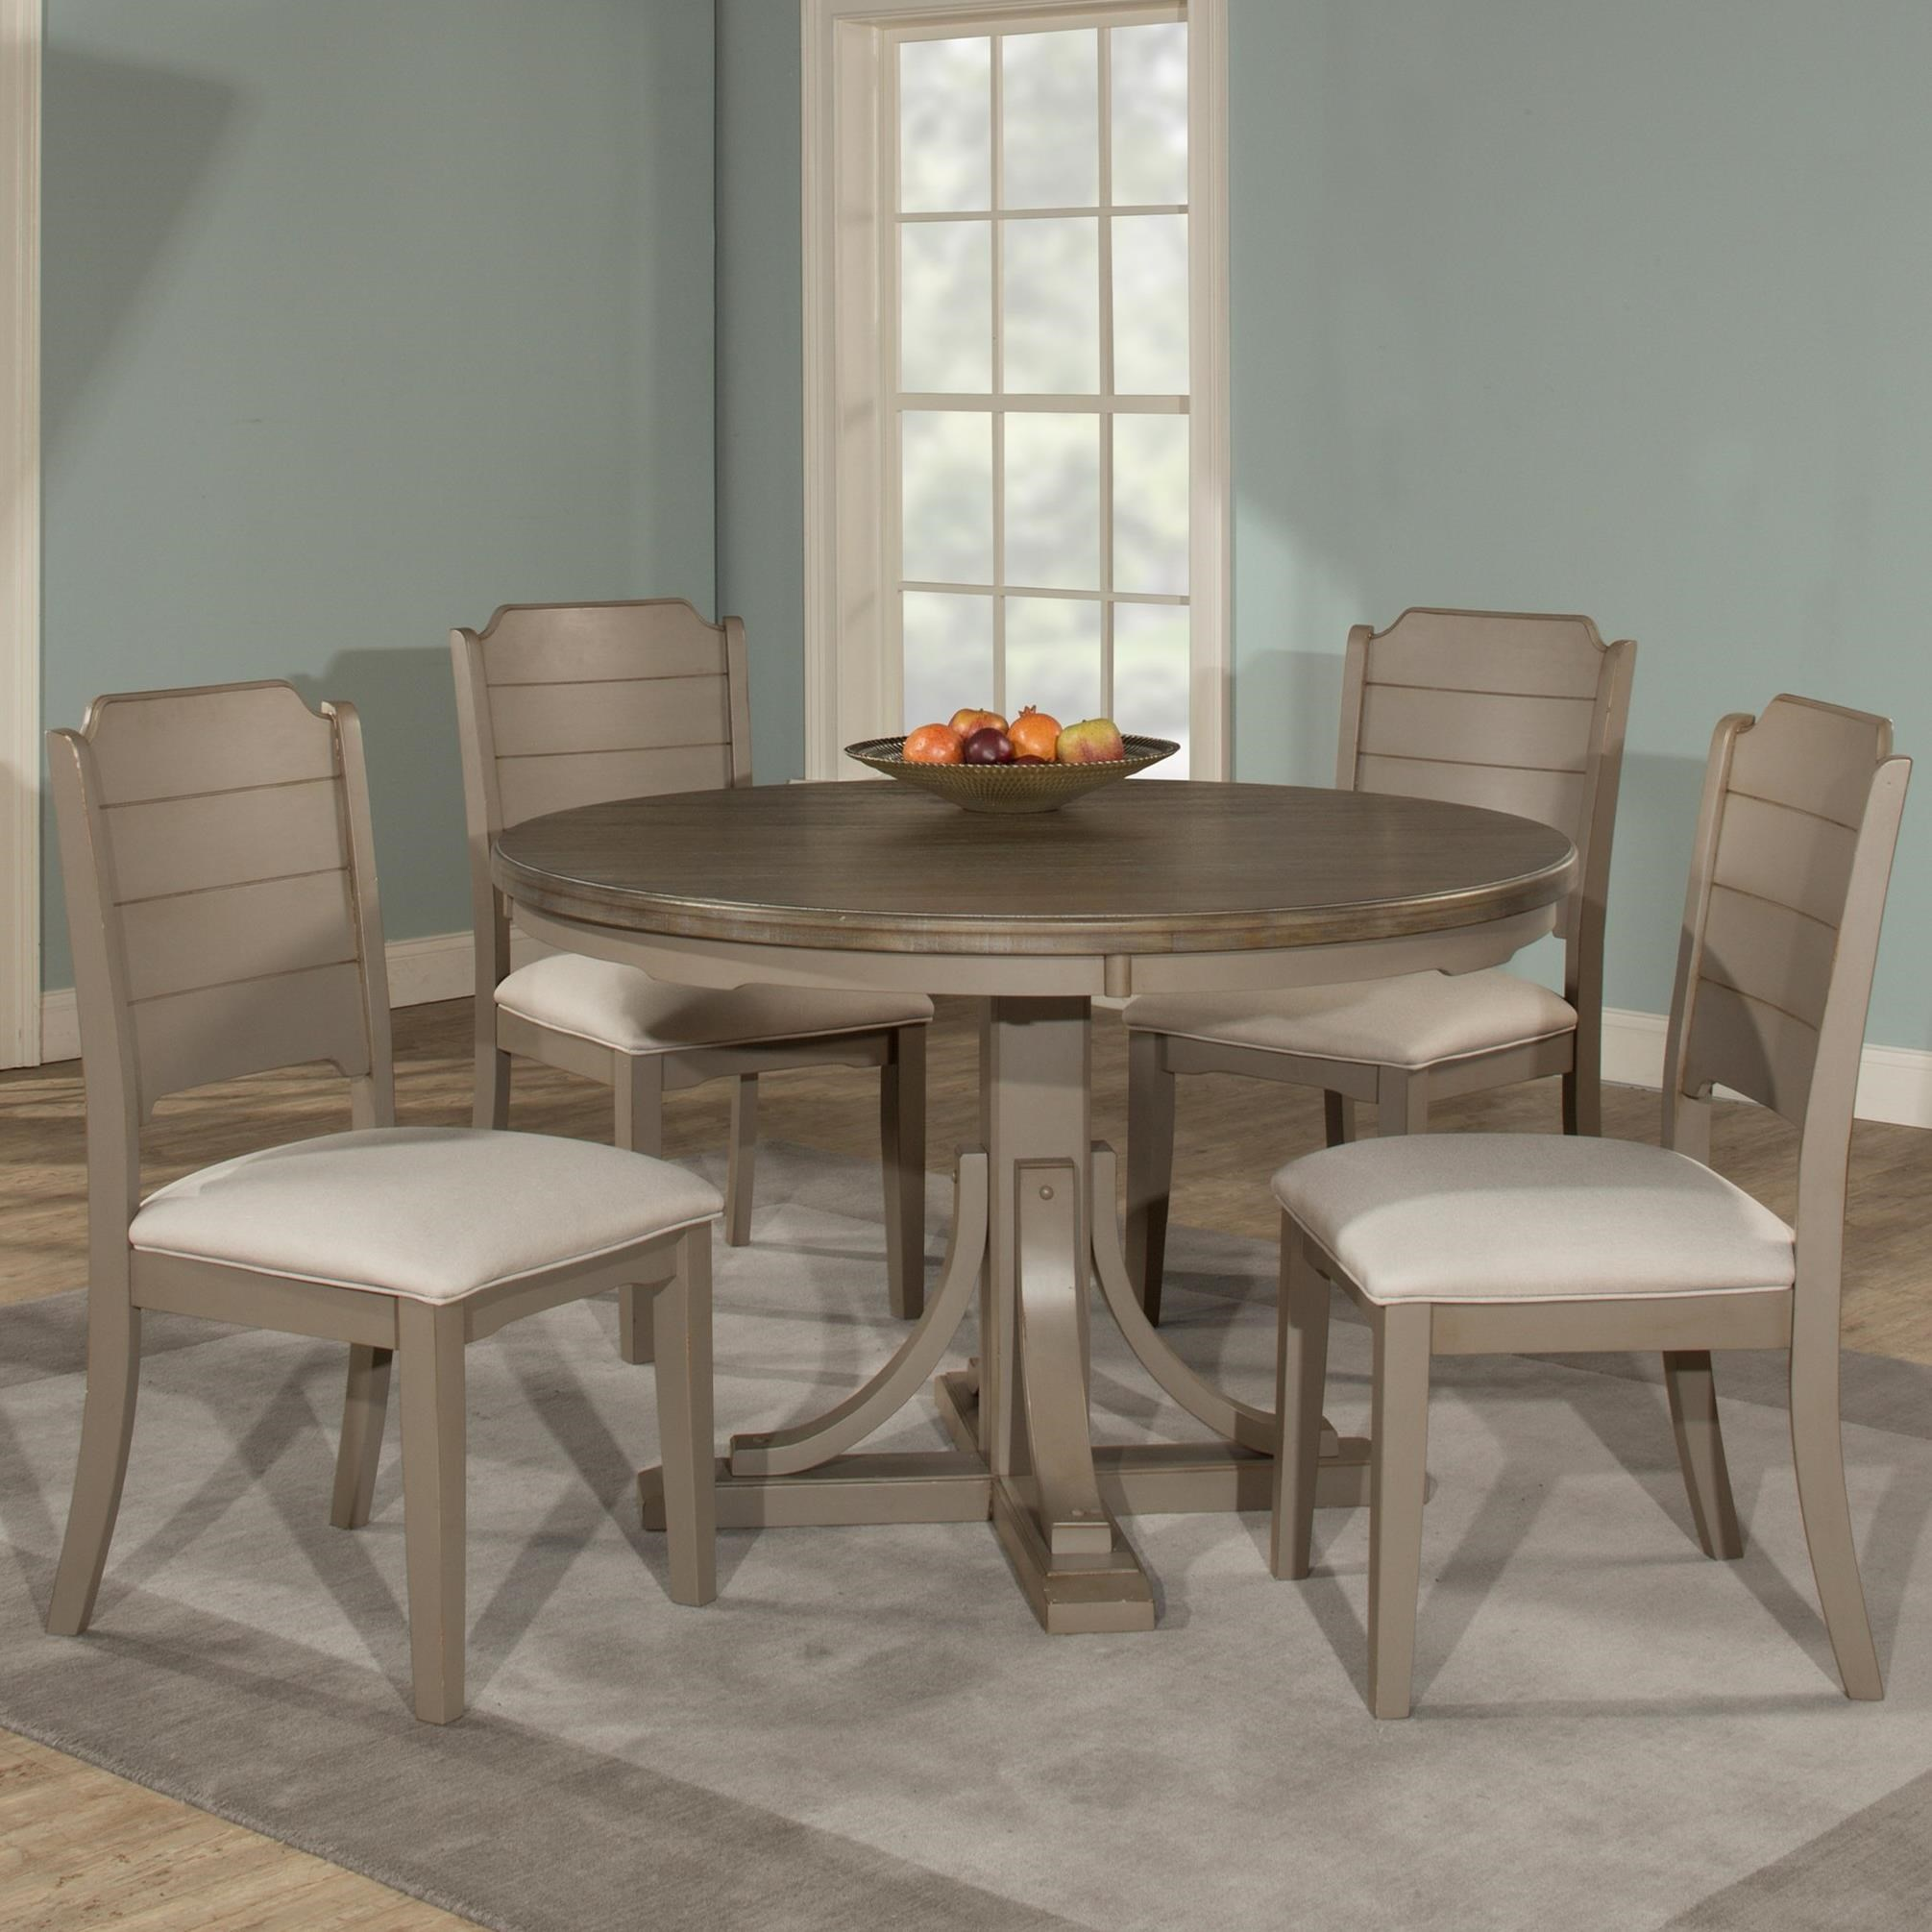 Clarion 5-Piece Dining Set at Ruby Gordon Home